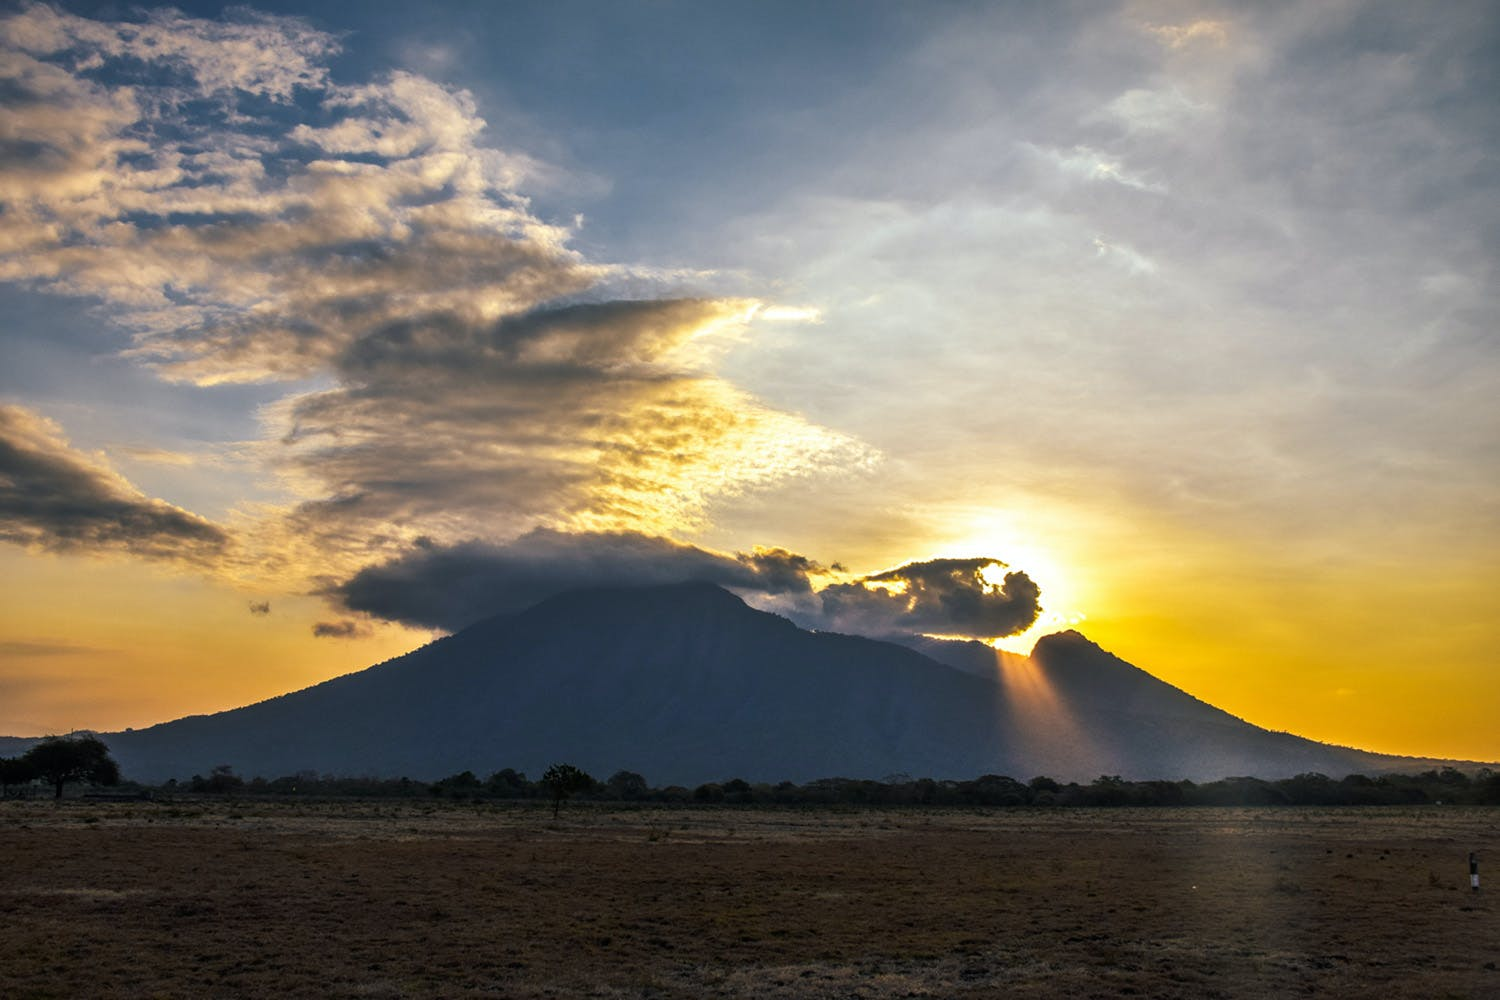 Bangsring Breeze tours to the nearby Baluran National Park